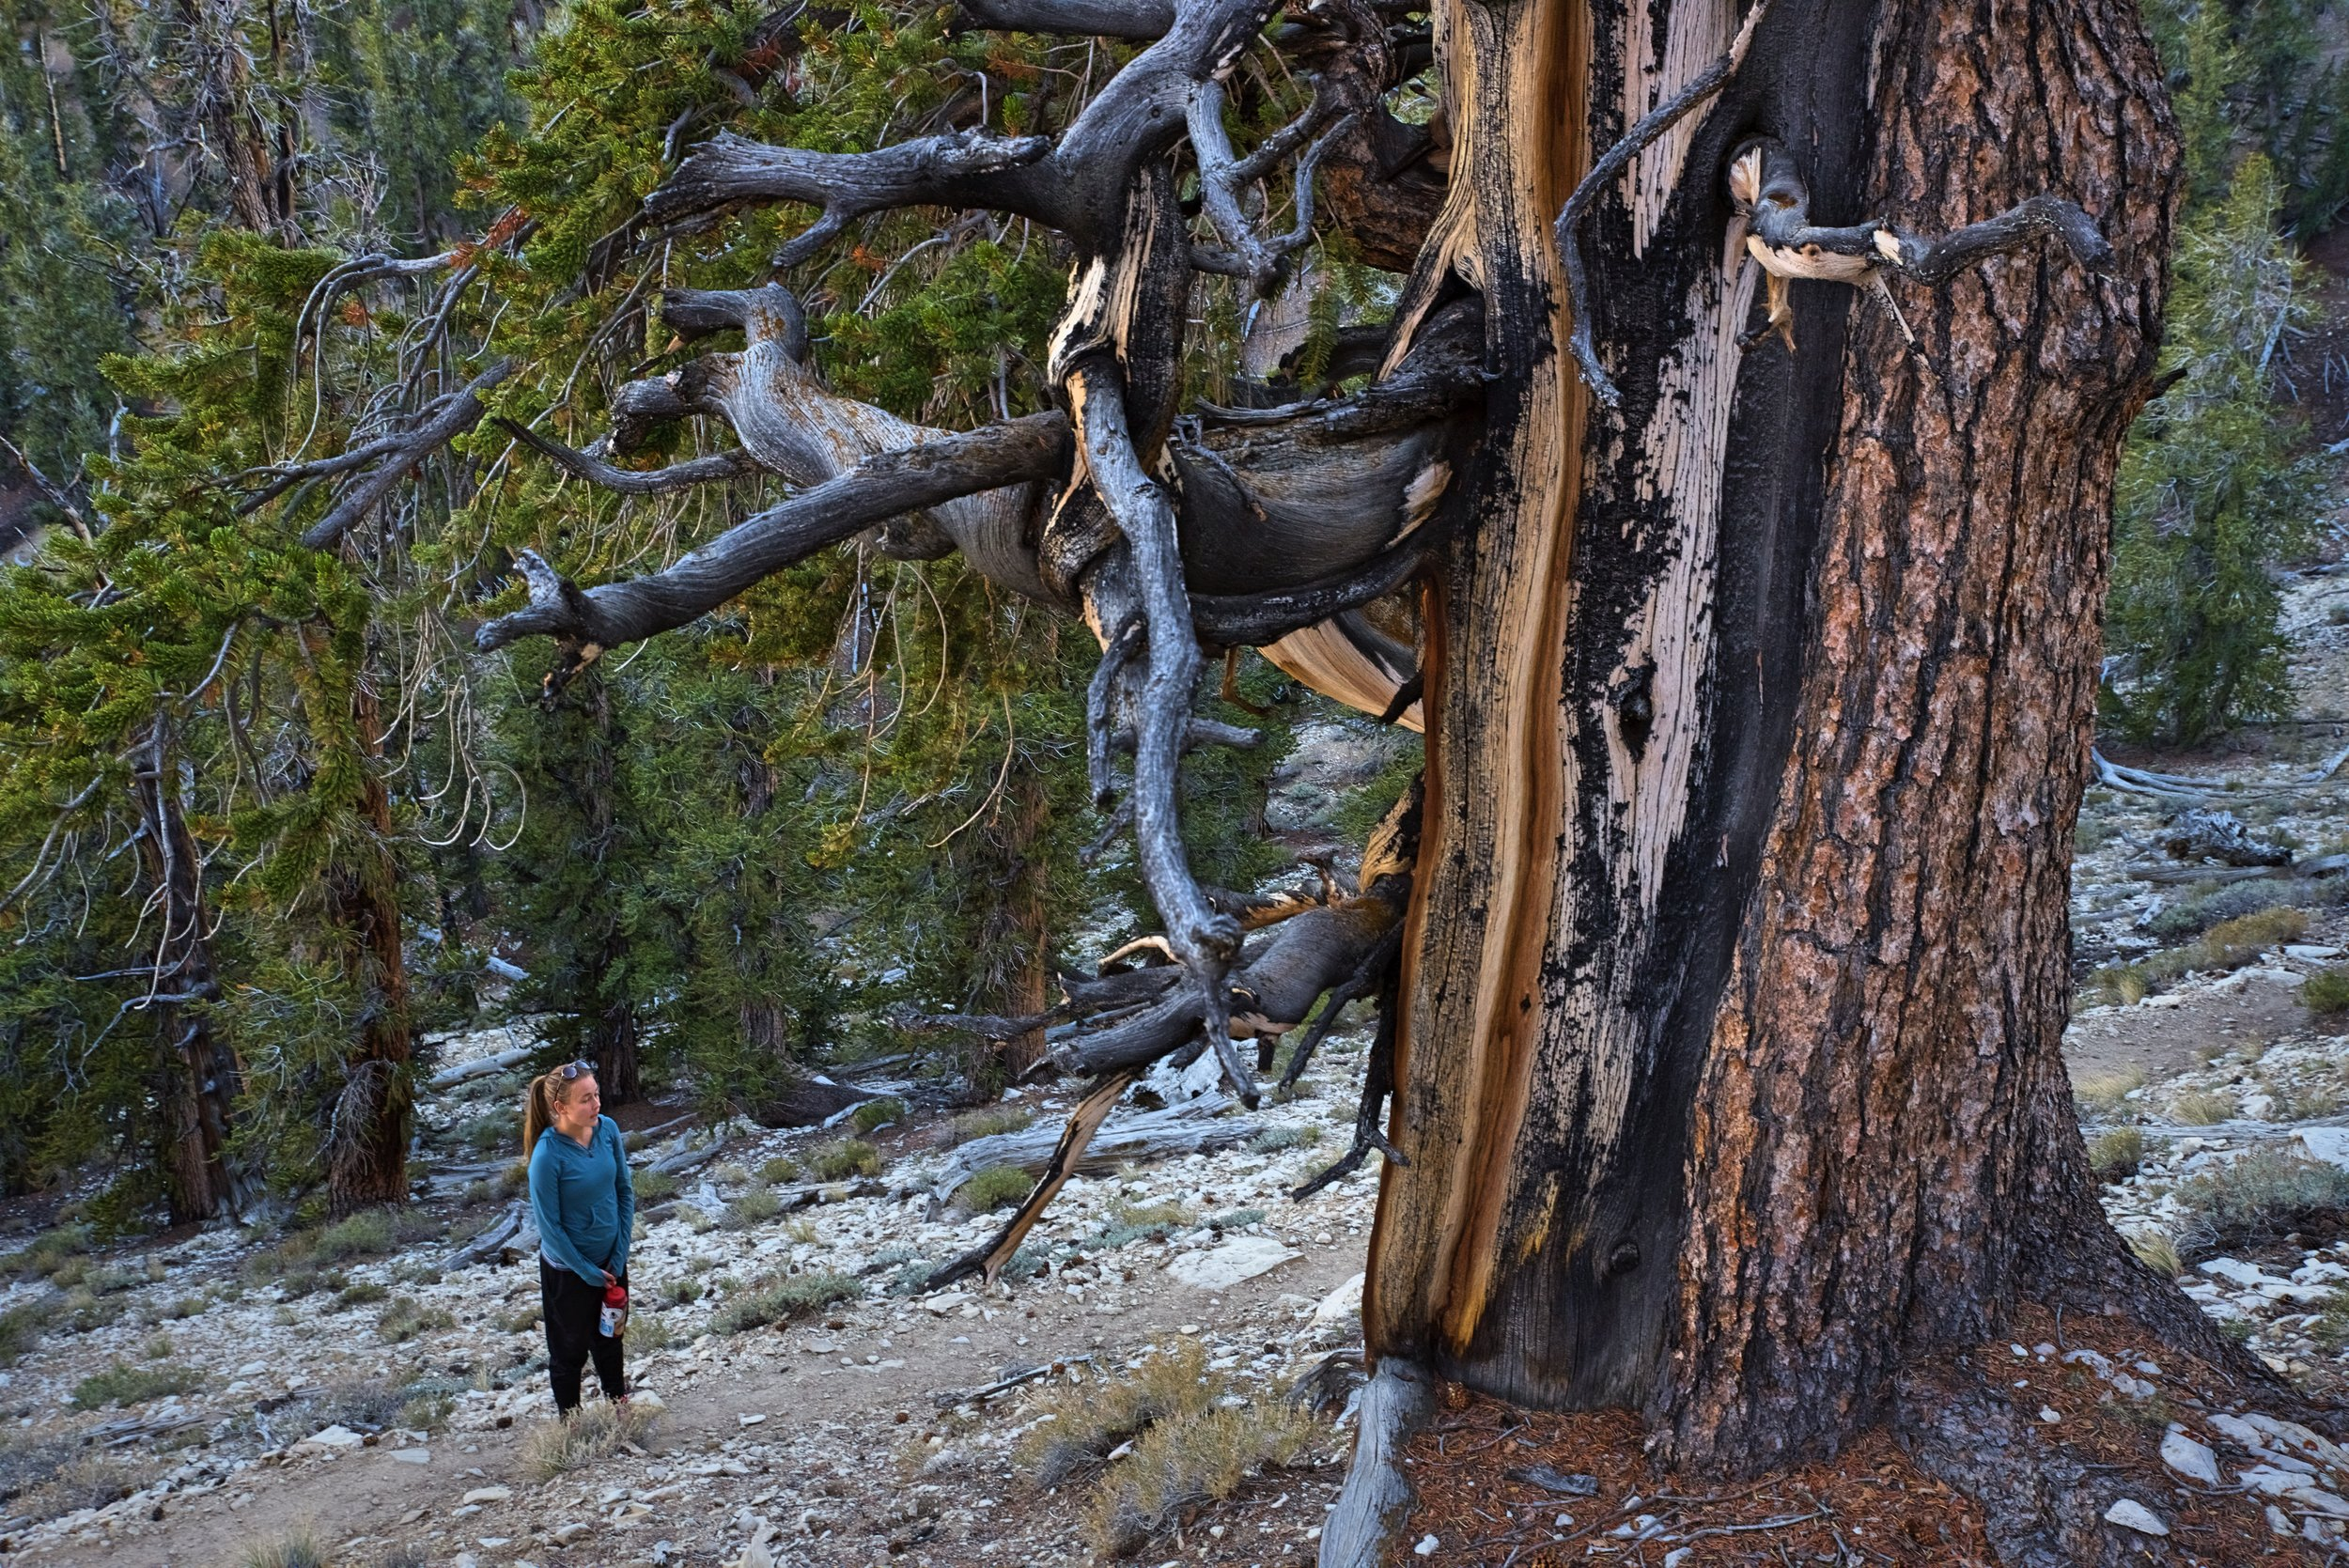 Methuselah may be the oldest, but all the trees in the grove are unfathomably old.